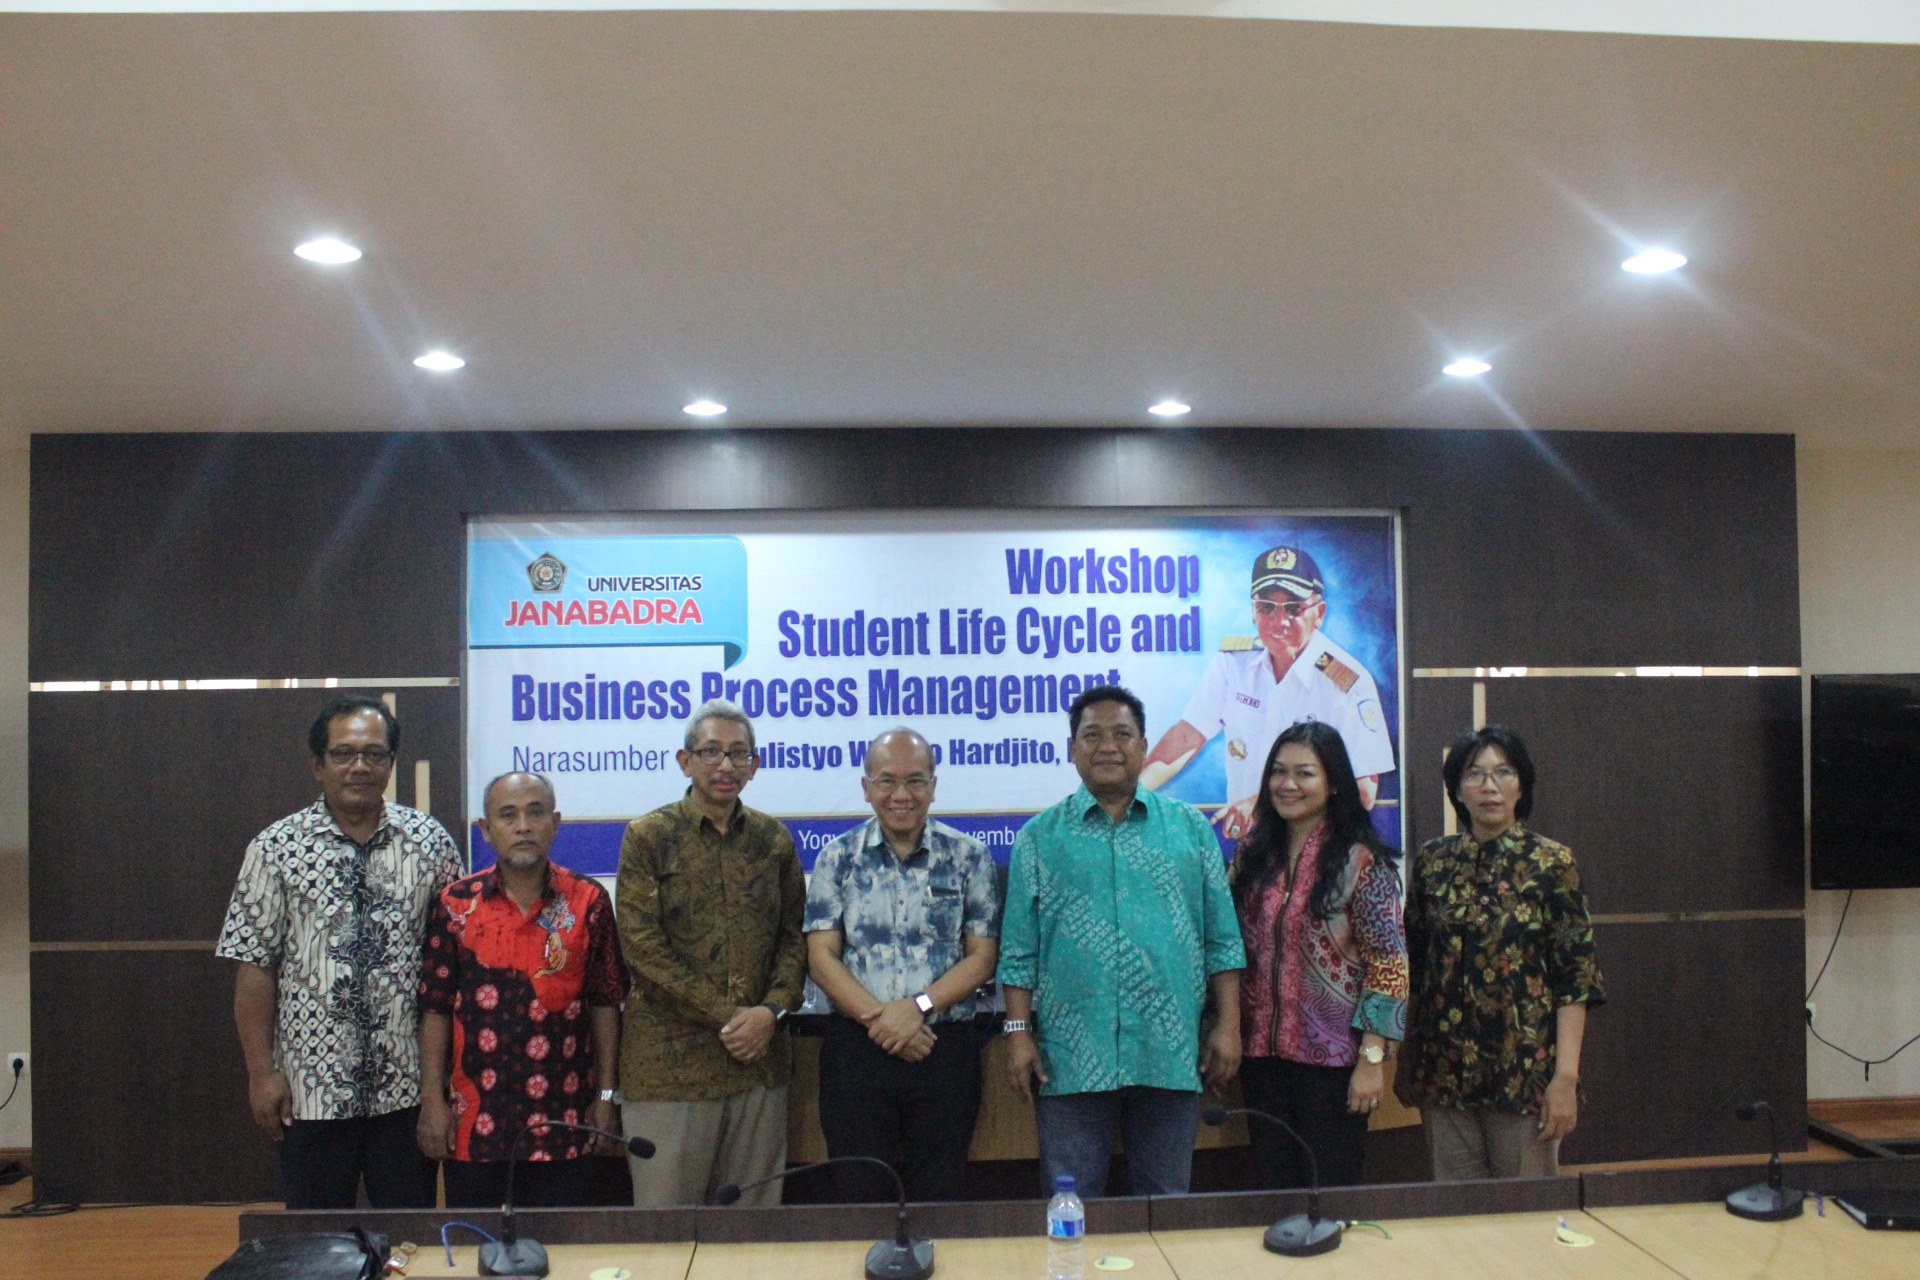 Workshop Student Life Cycle and Bussines Process Management